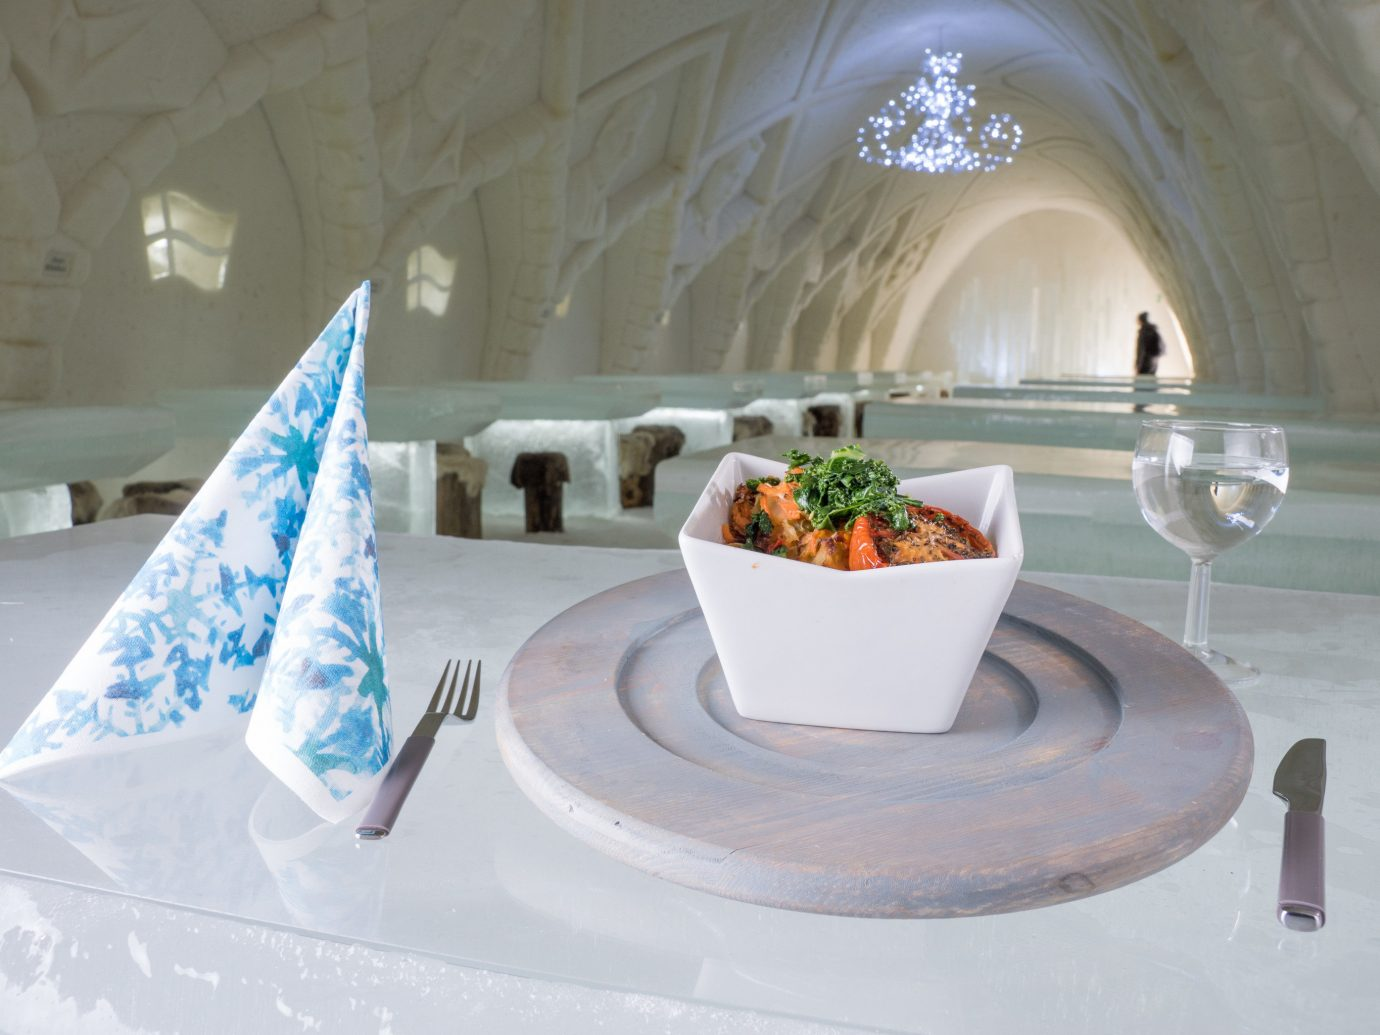 dish at The Snowcastle Of Kemi, Finland